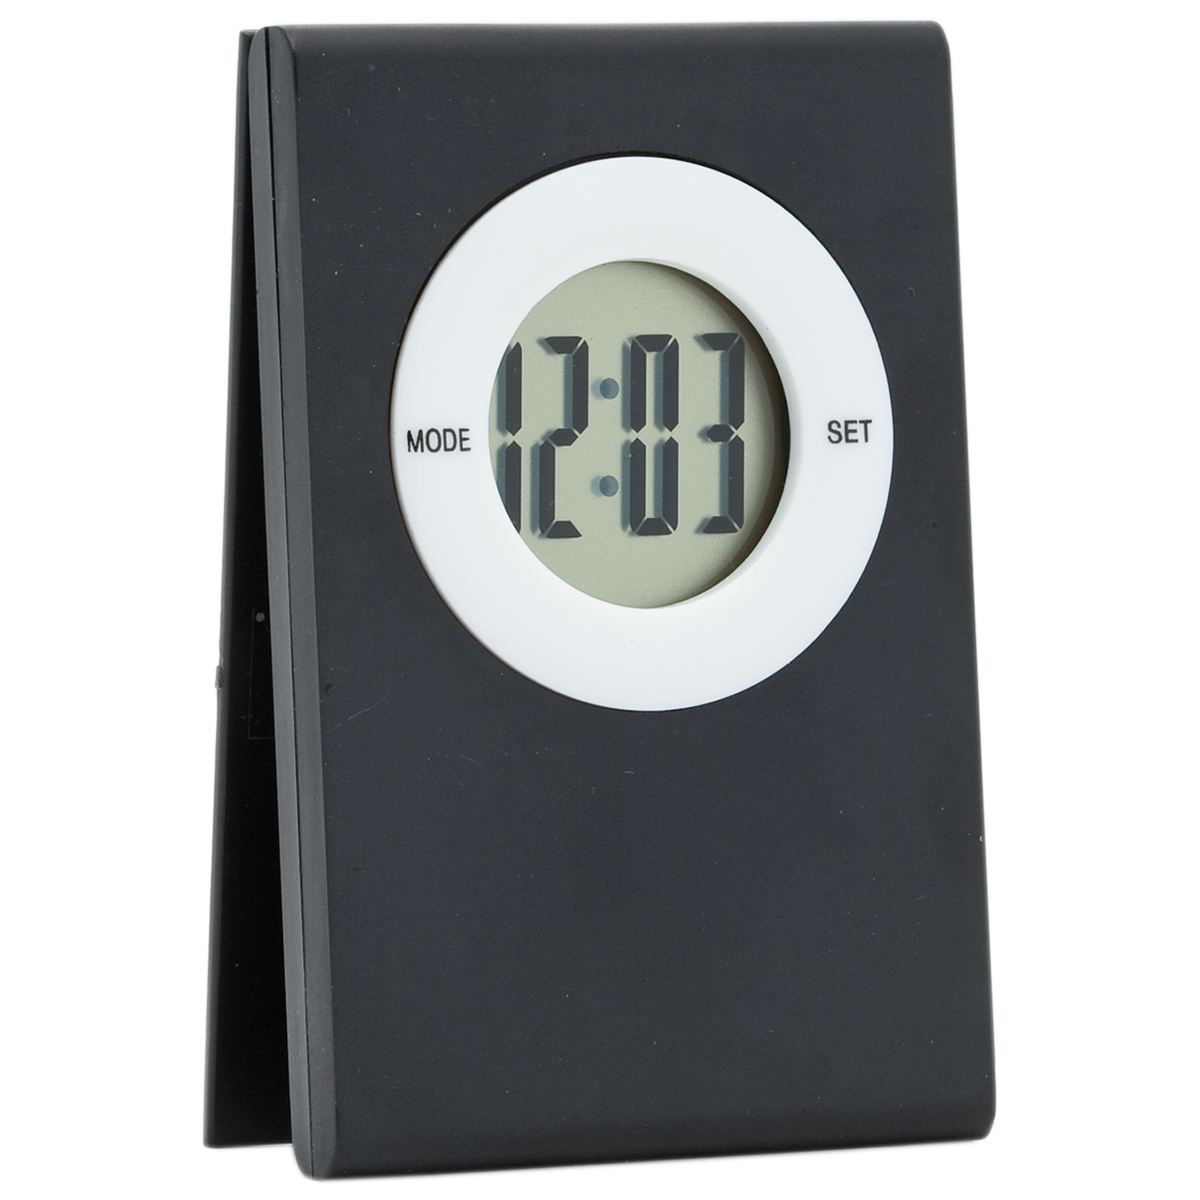 Table Clock 055 - hmi35055-01 (Black)